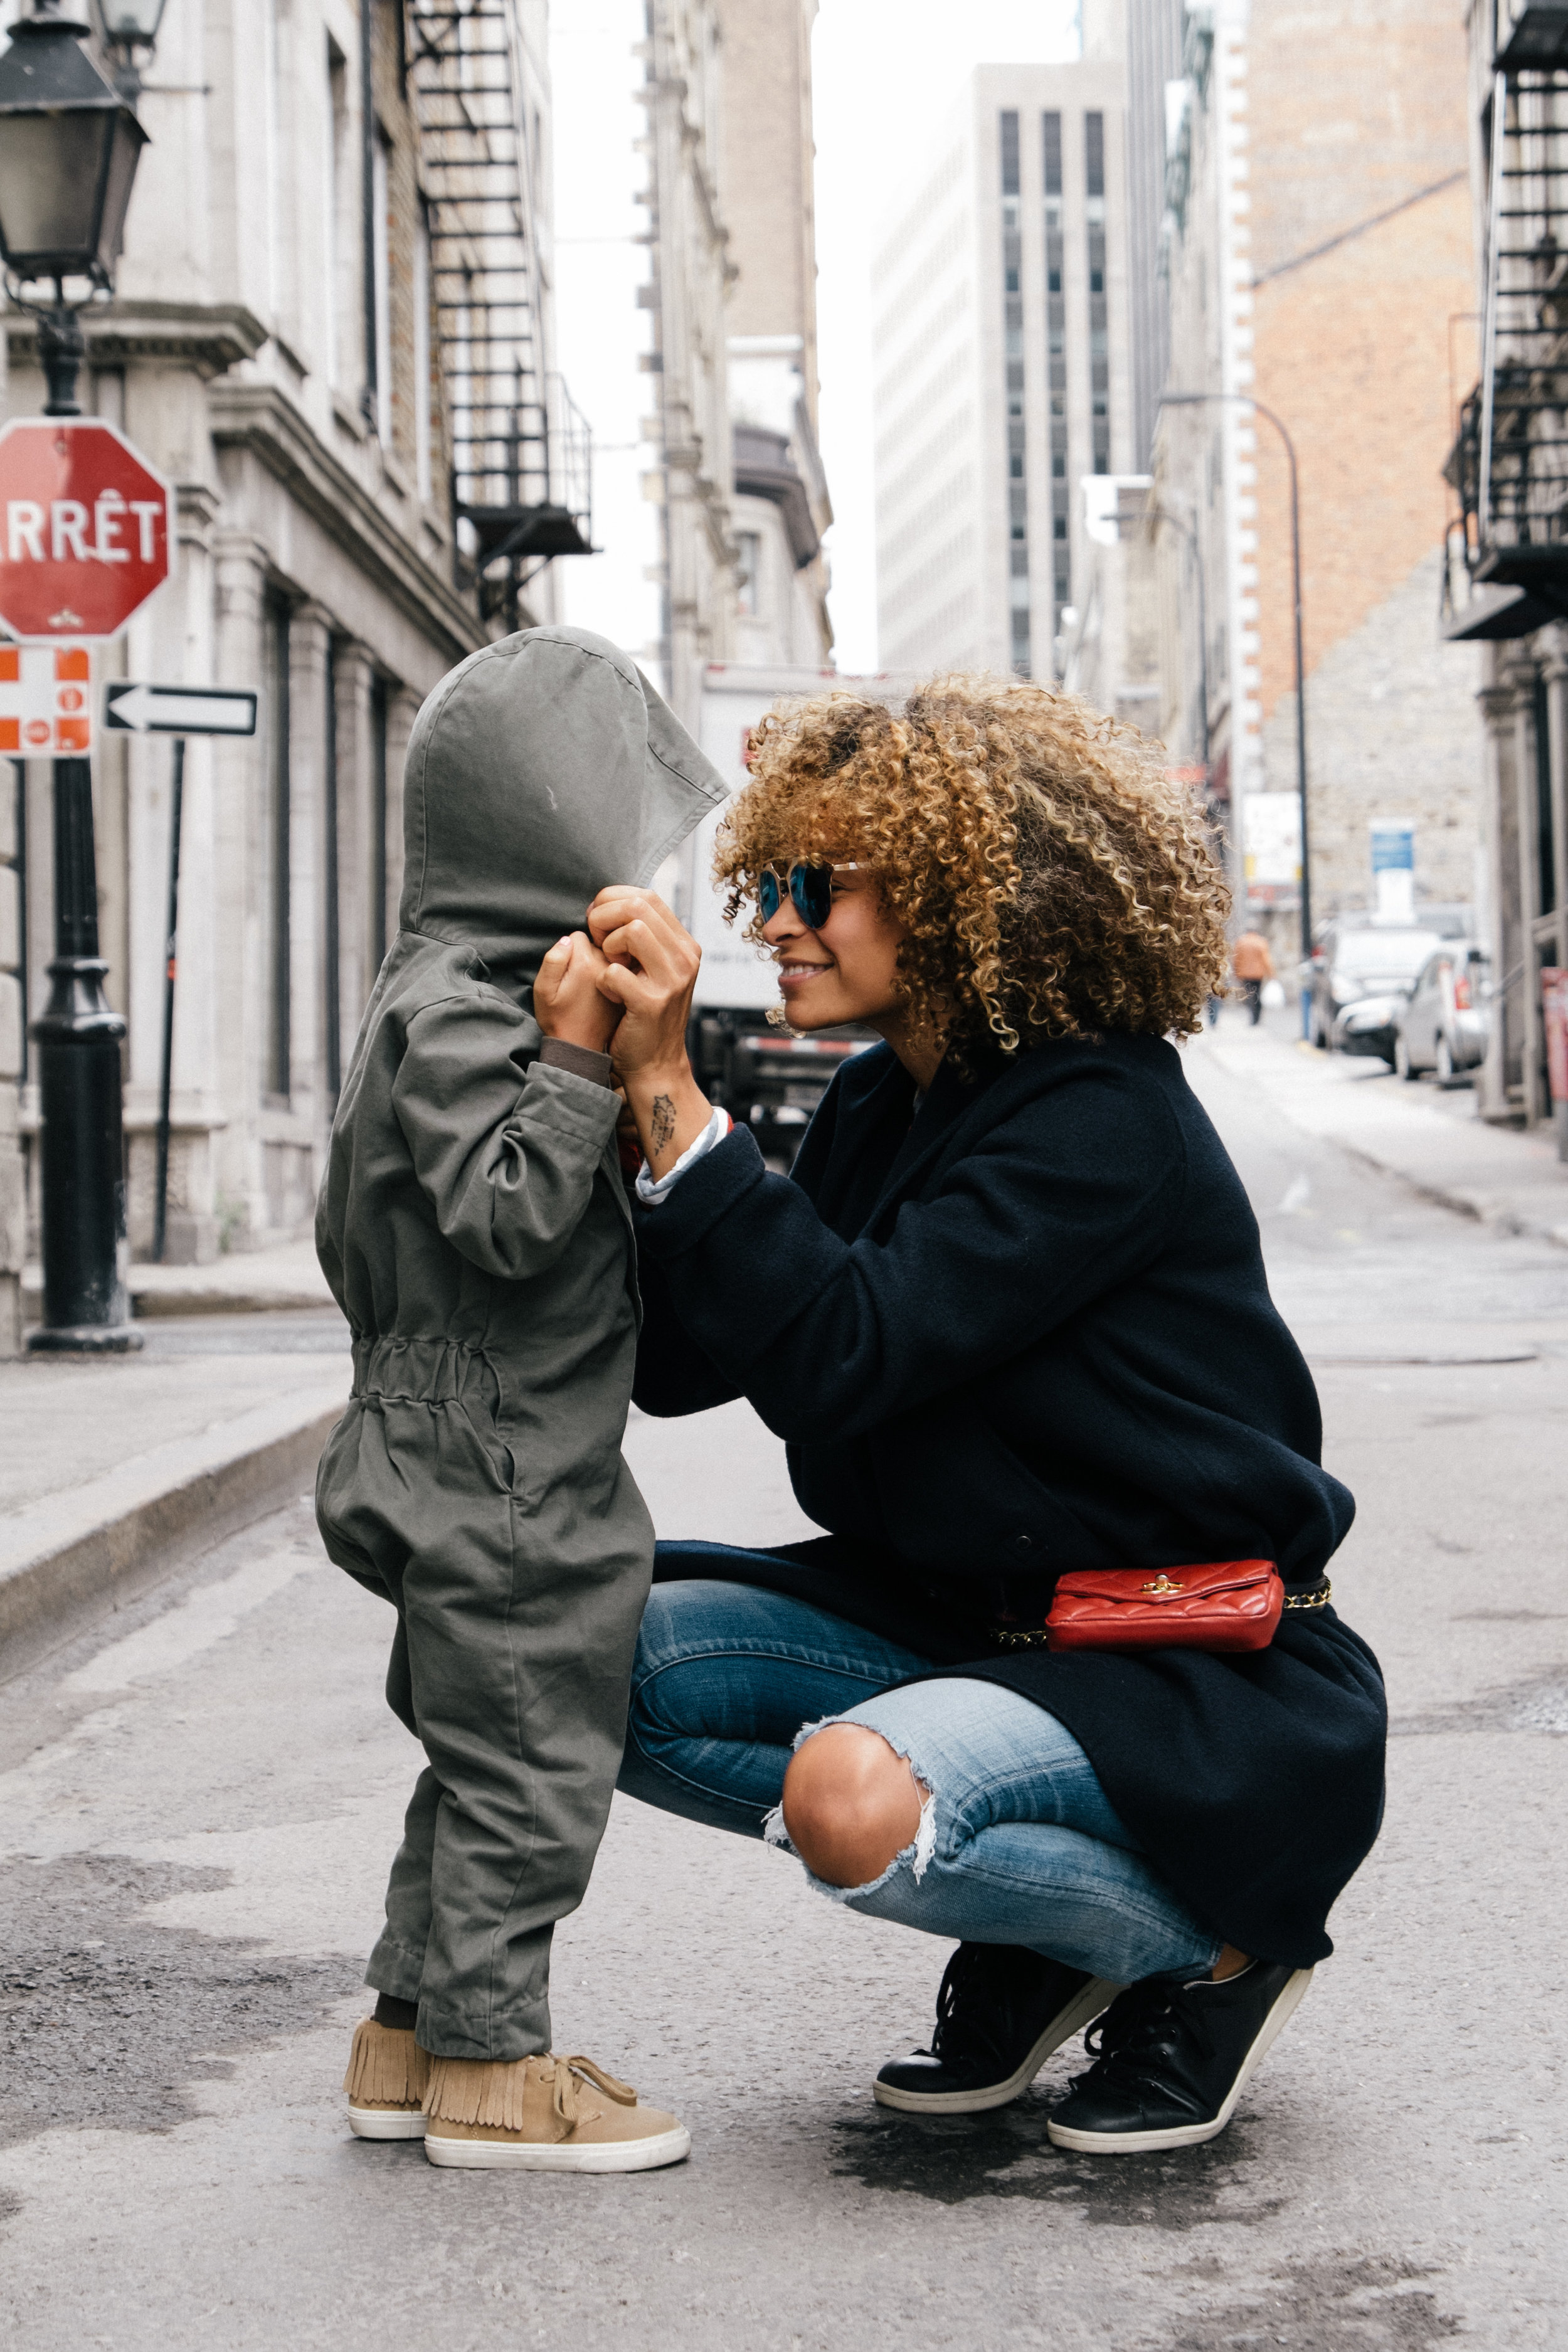 martha's vineyard BOOKING FEES - Single Placement: $28 per sitter, per day1 Week-long Placement: $1452+ Week Placement: $110/weekOnce a family is matched with a sitter, they pay a non-refundable booking fee to Sitter Match LLC. They are then responsible for paying their sitter an hourly fee at an agreed-upon rate.Families may cancel at any point until they are matched with a sitter. Booking fees are non-refundable once a family has received an email confirmation.